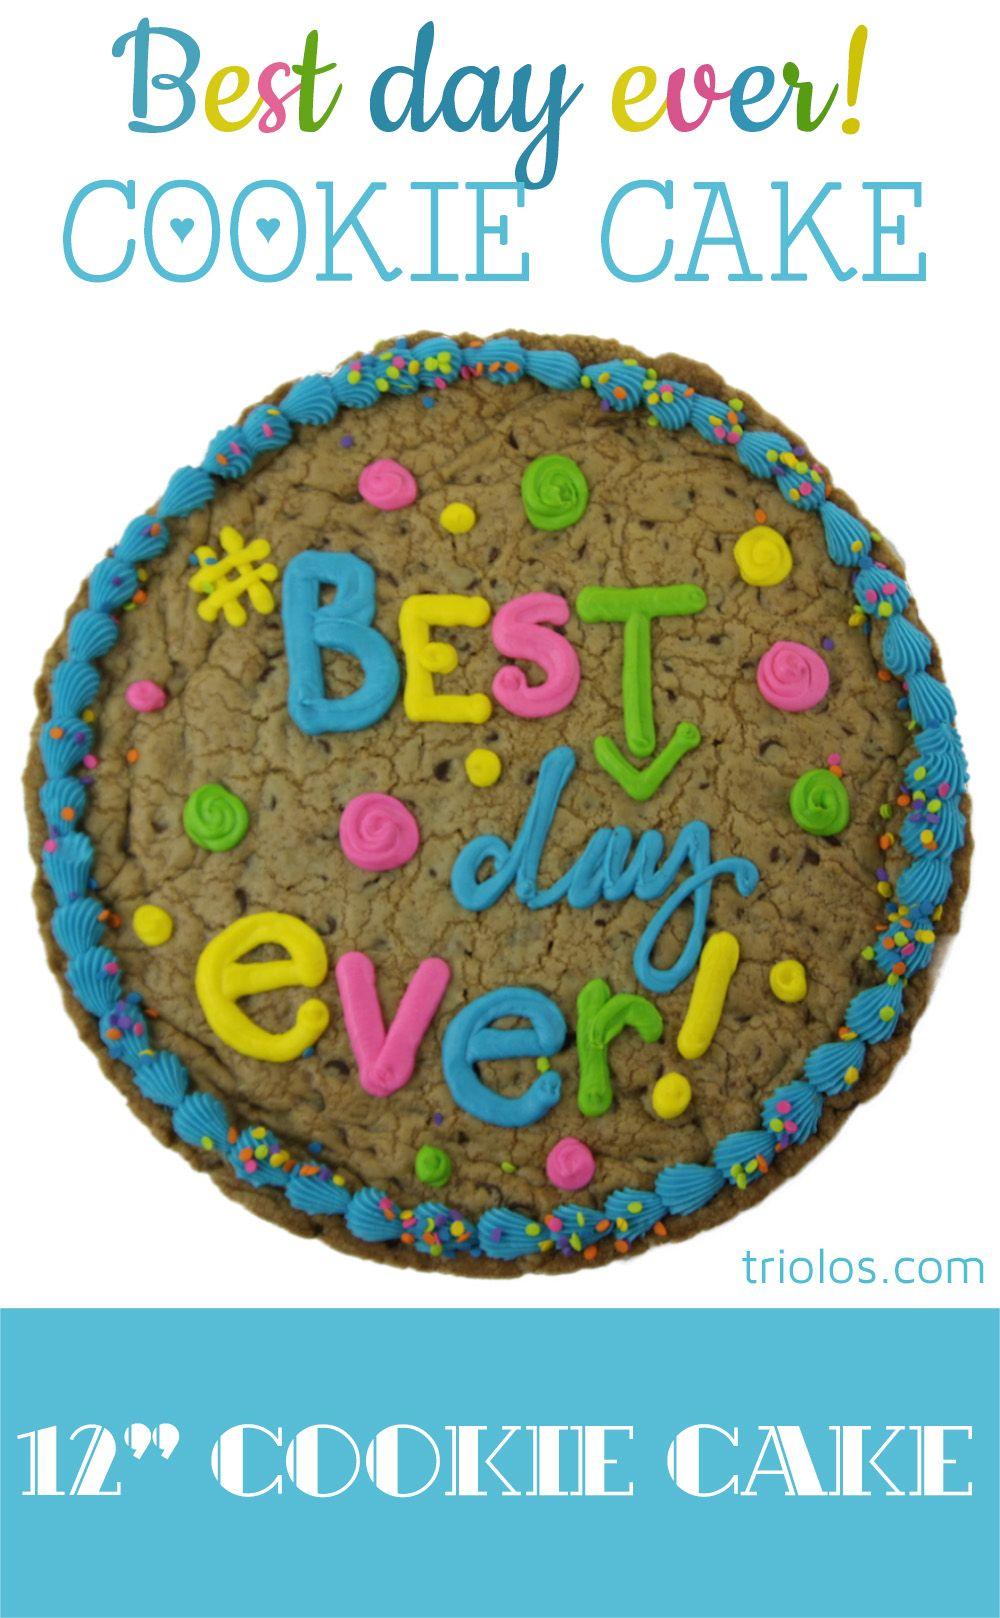 Send someone a Best Day Ever Cookie Cake for a birthday or just